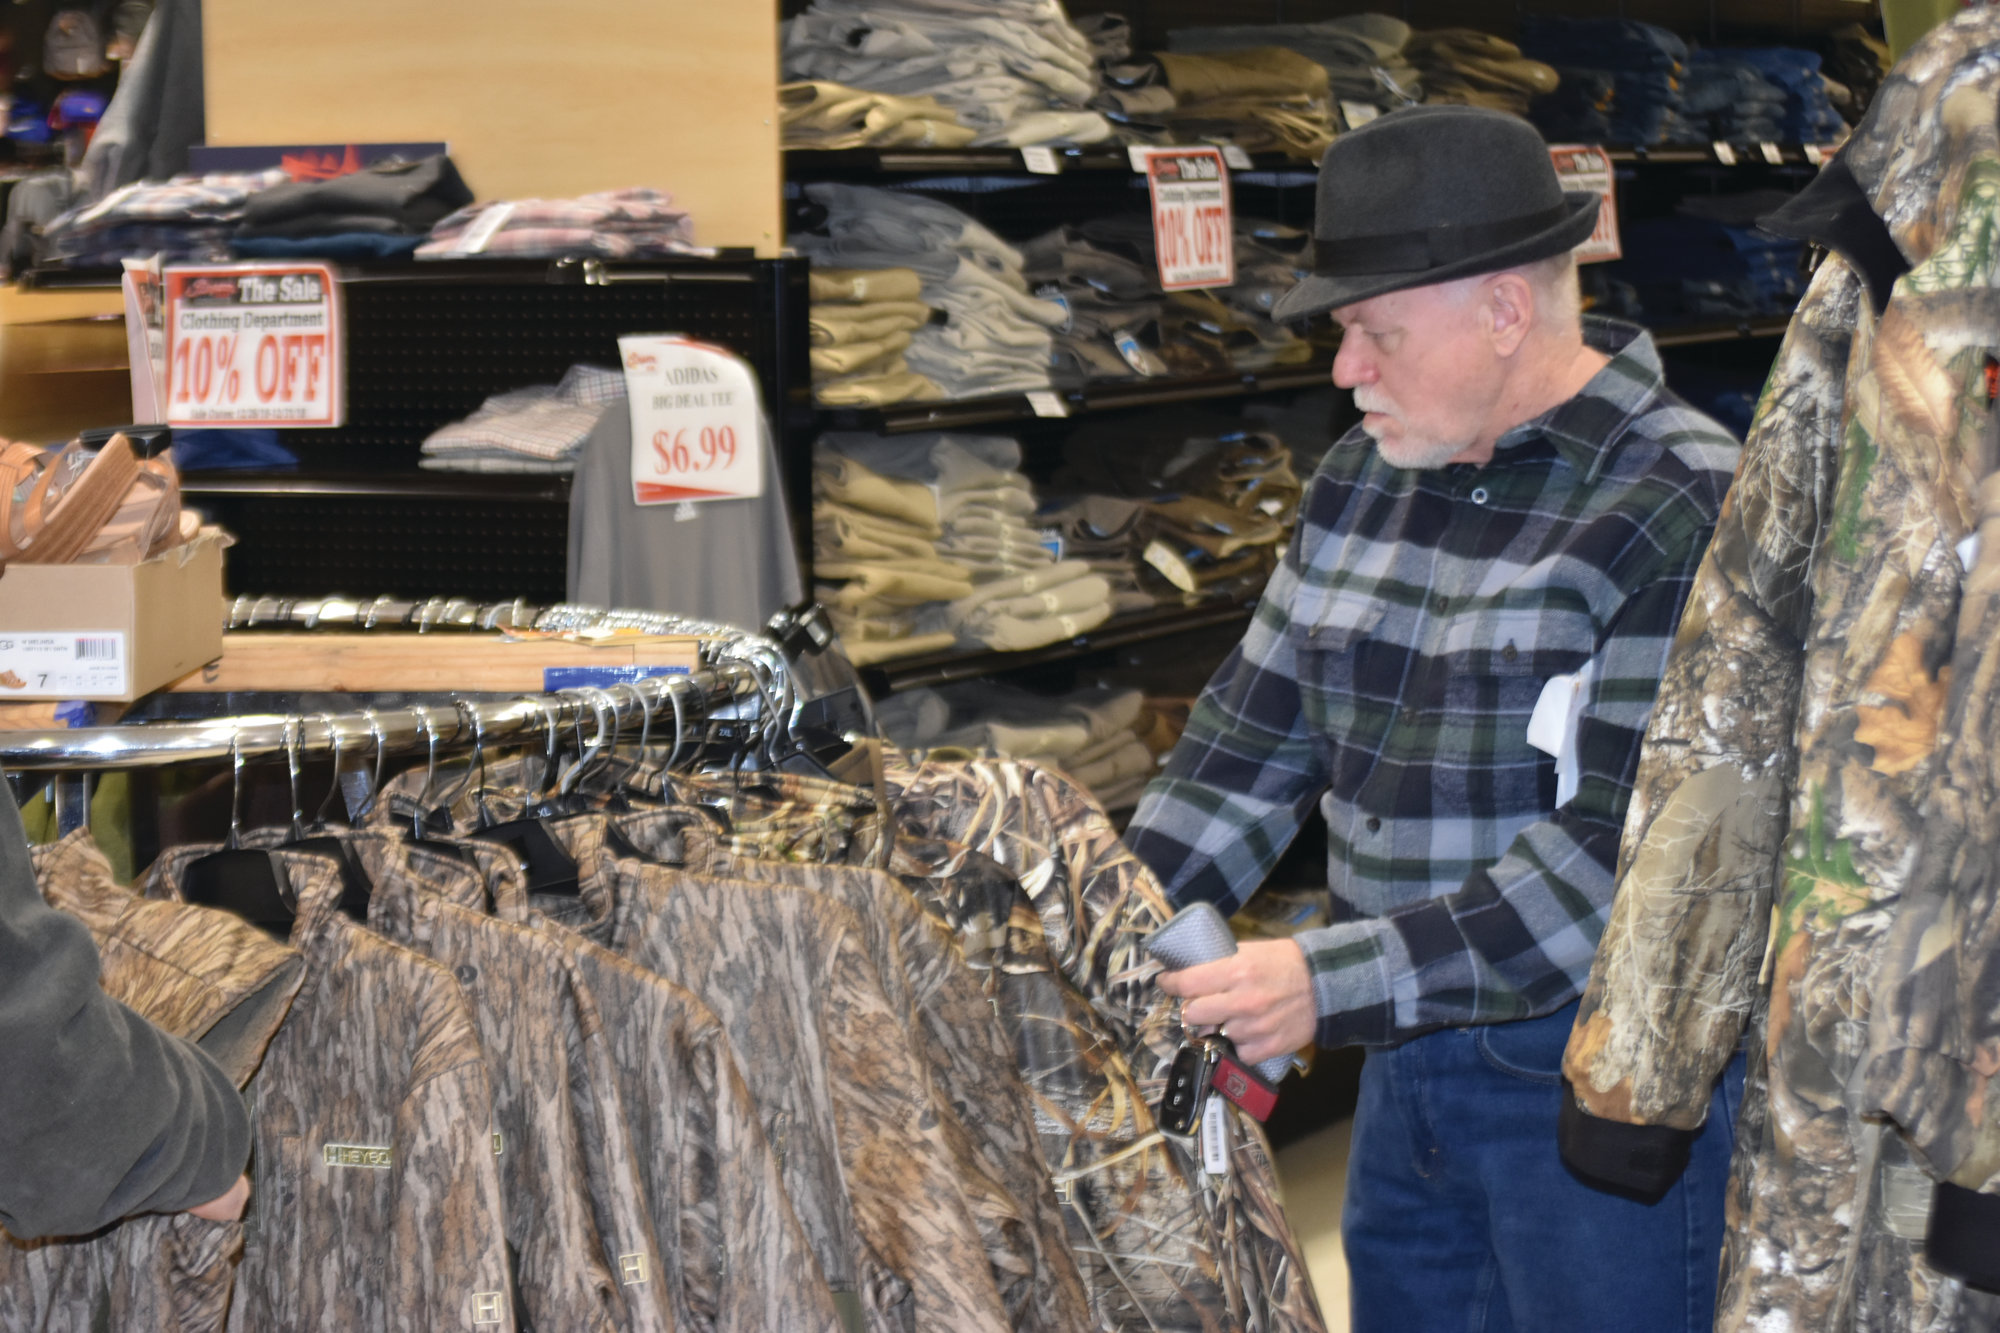 BRUCE MILLS / THE SUMTER ITEM  A customer looks through a rack of camouflage items that were priced 40 percent off on Thursday at Simpson Hardware & Sports.